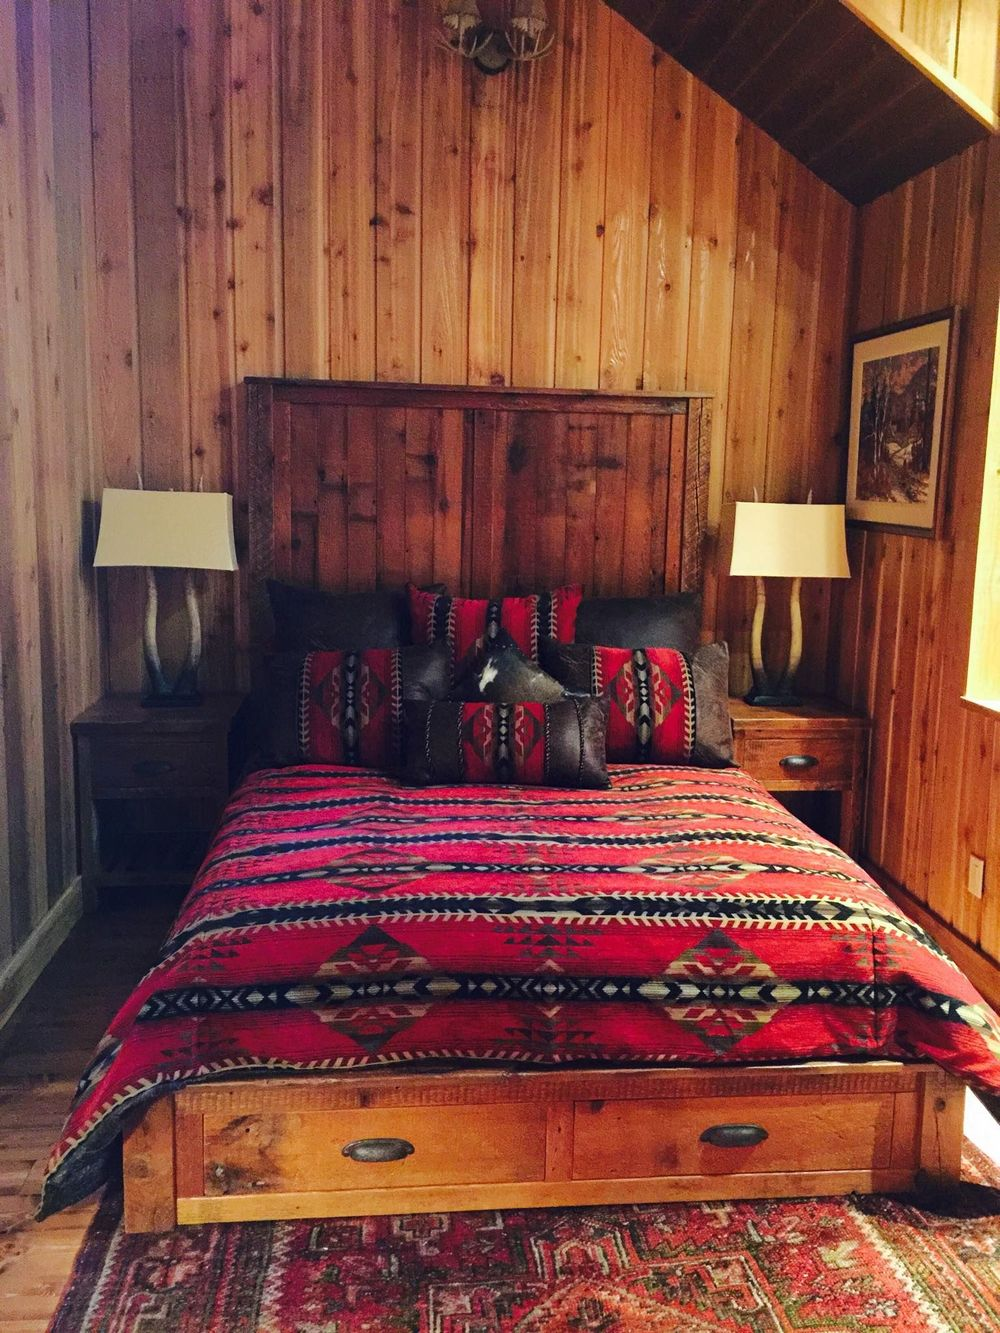 CLICK TO VIEW OUR RUSTIC BEDROOM PROJECT PHOTOS